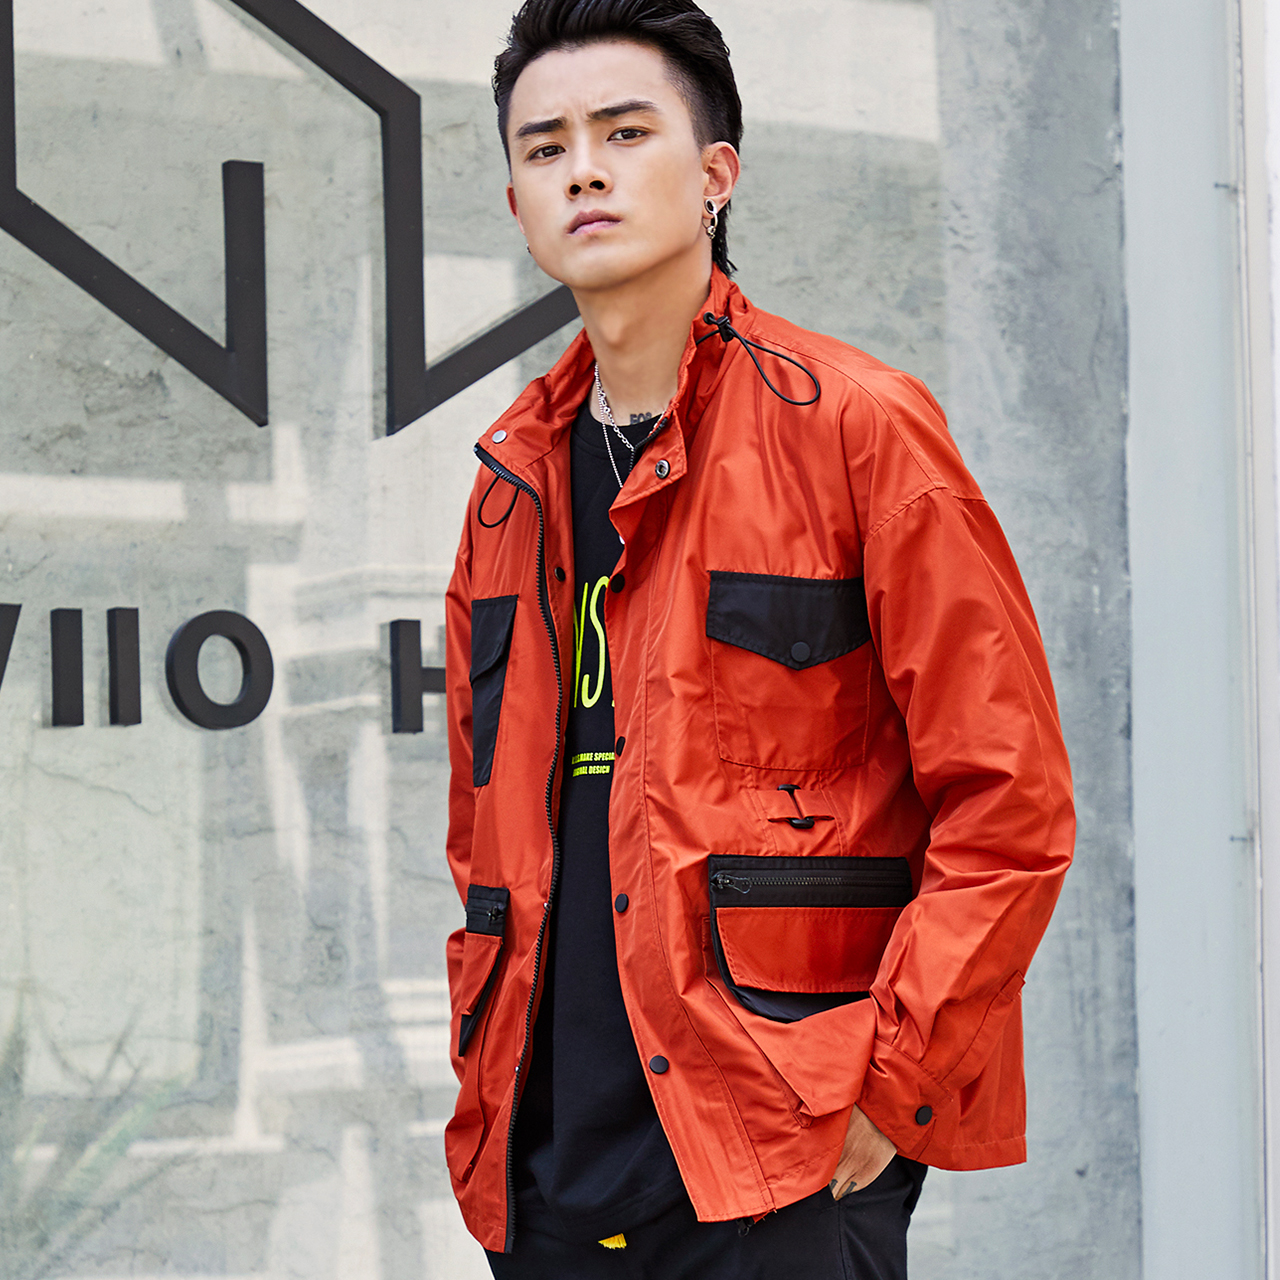 Wex national fashion coach jacket, functional style, handsome splicing, multi pocket, versatile tooling jacket, new fashion in autumn